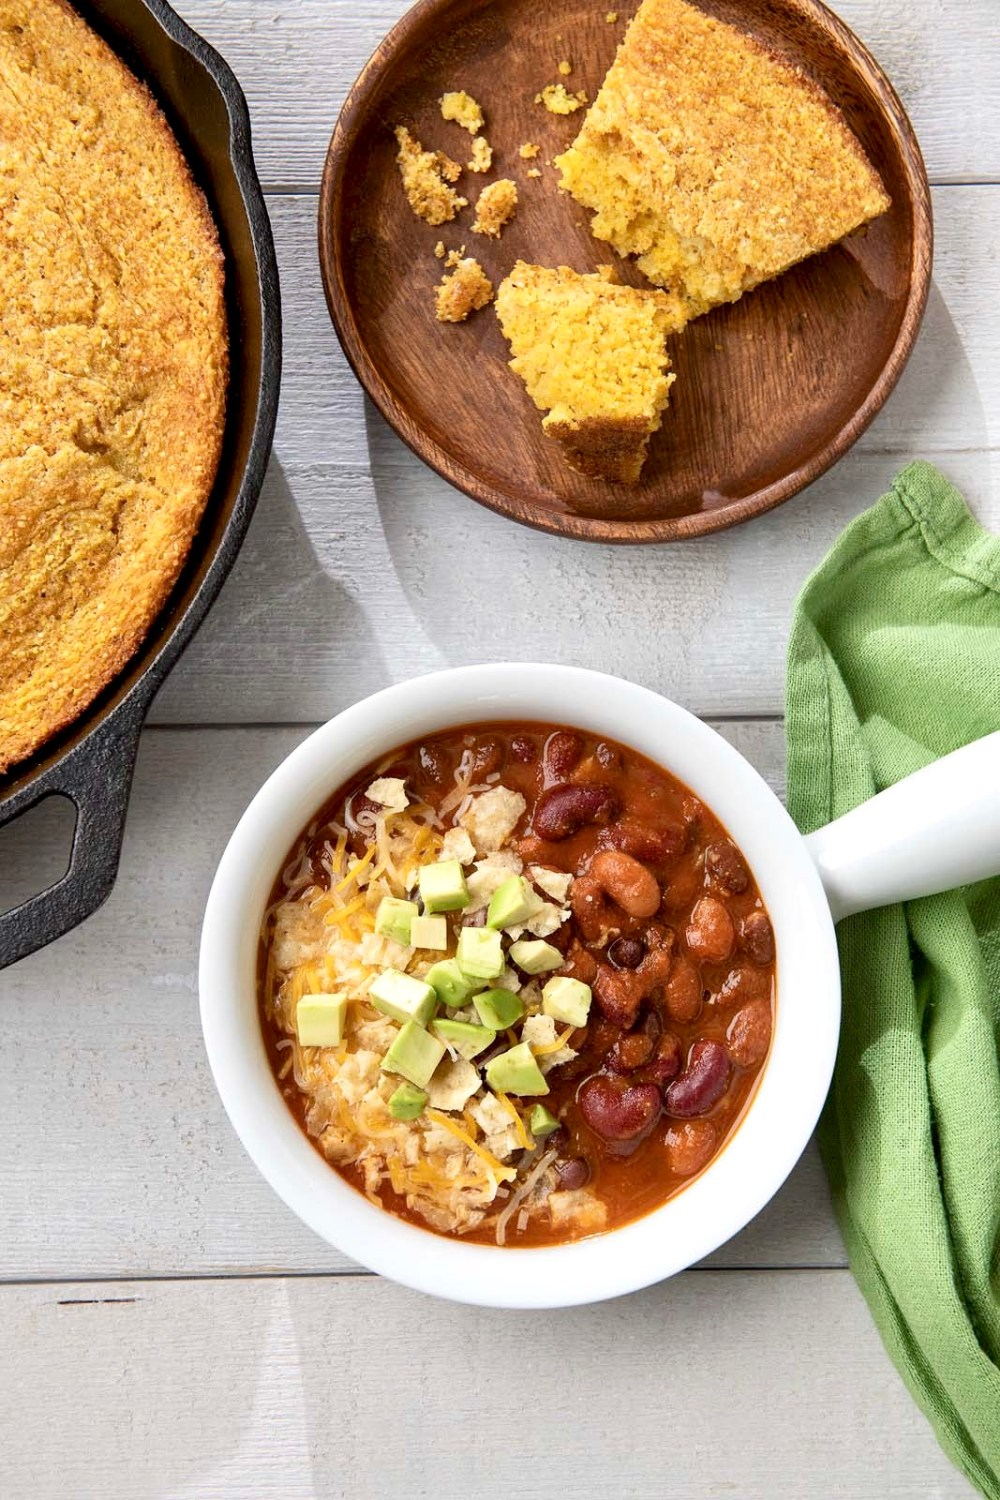 With its flavor-packed, quick-cooking, crowd-pleasing appeal, this meatless recipe defies traditional chili logic and is 100% worthy of the weekly dinner rotation!